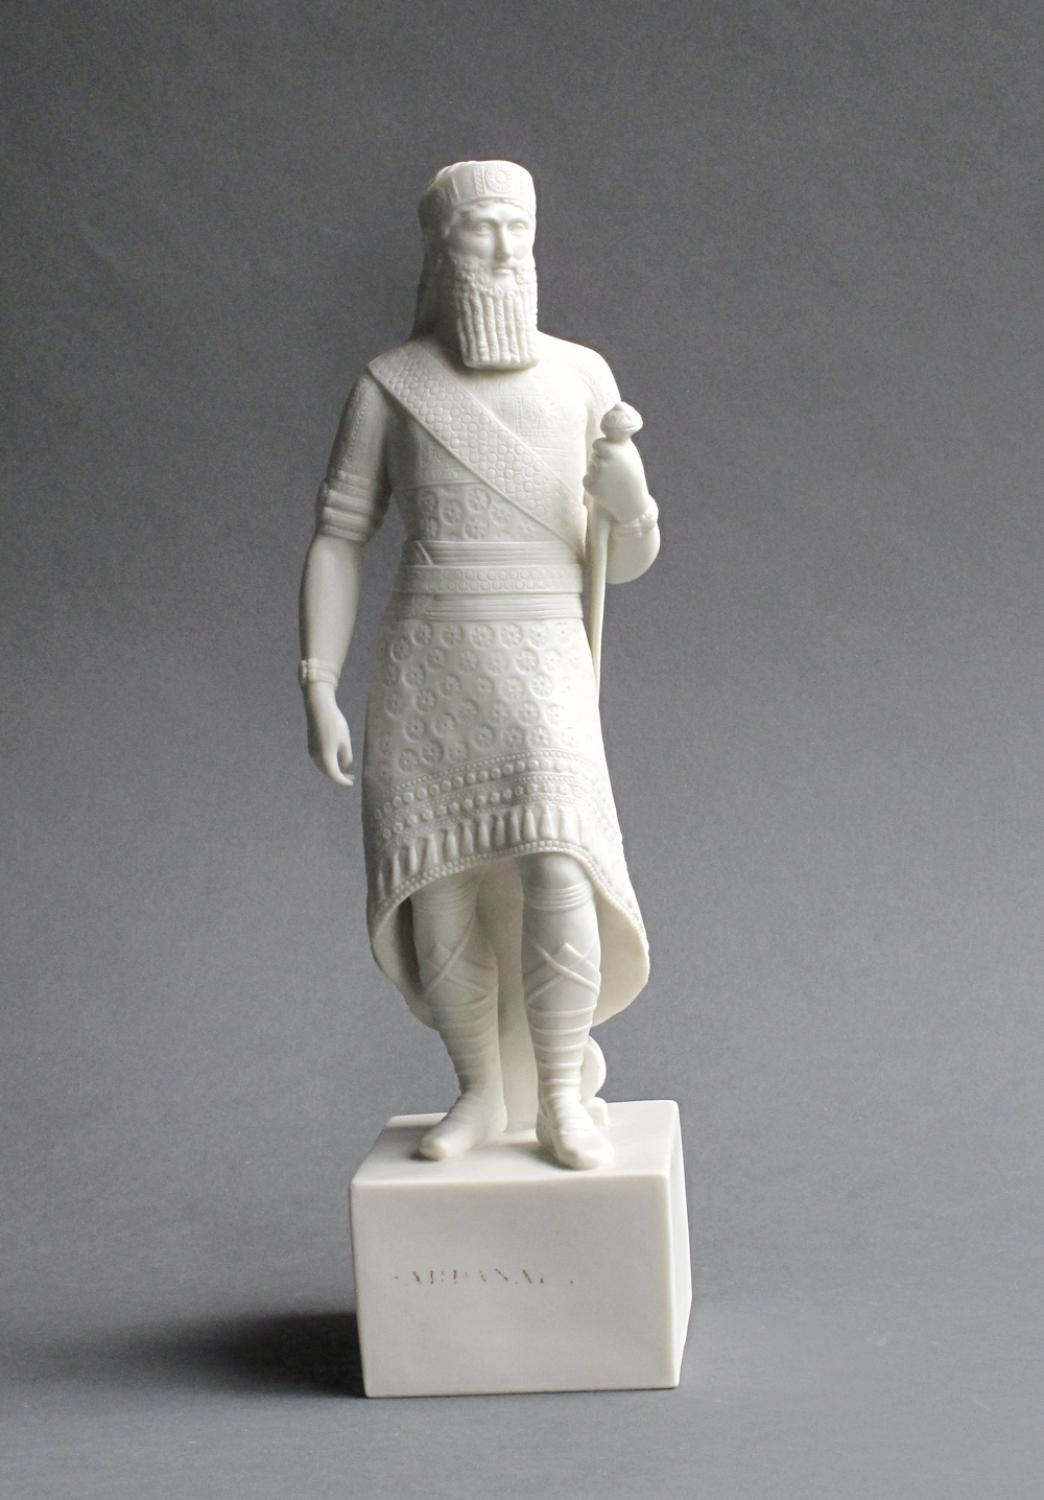 Copeland Parian figure of Sardanapalus